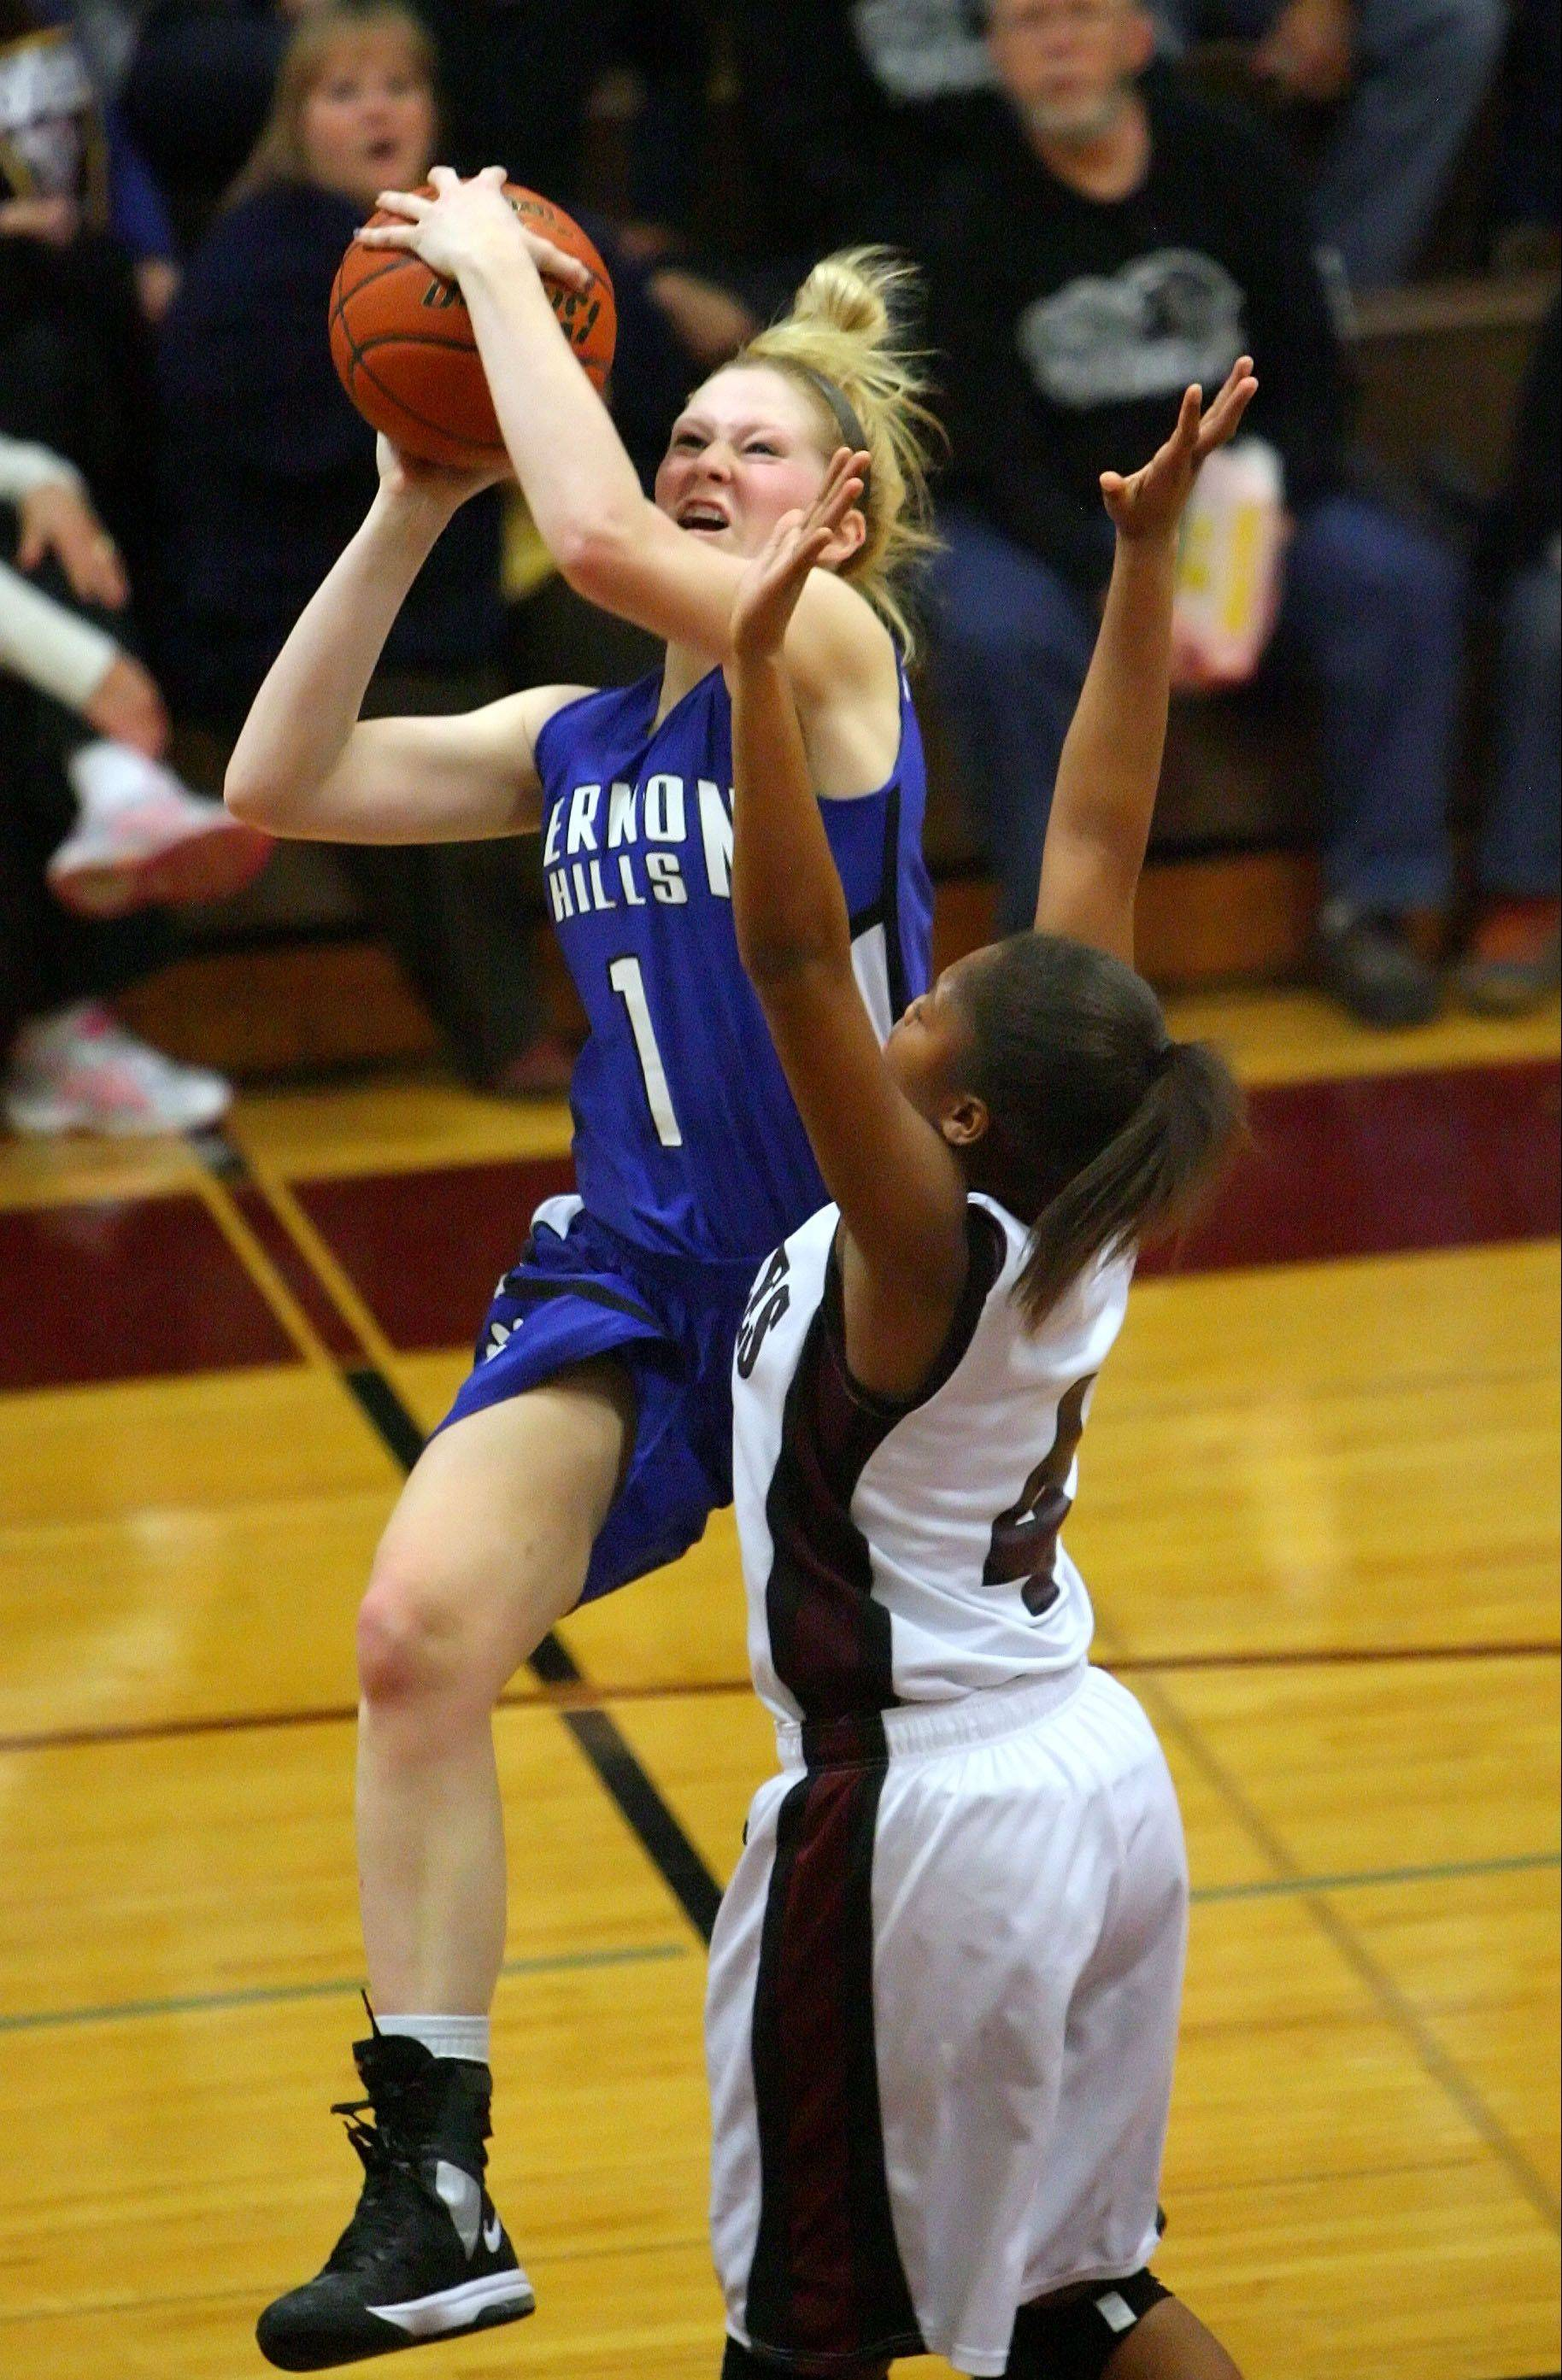 Vernon Hills' Sydney Smith, left, drives on Zion-Benton's Krystal Walker during the NSC title game Wednesday night at Zion-Benton.